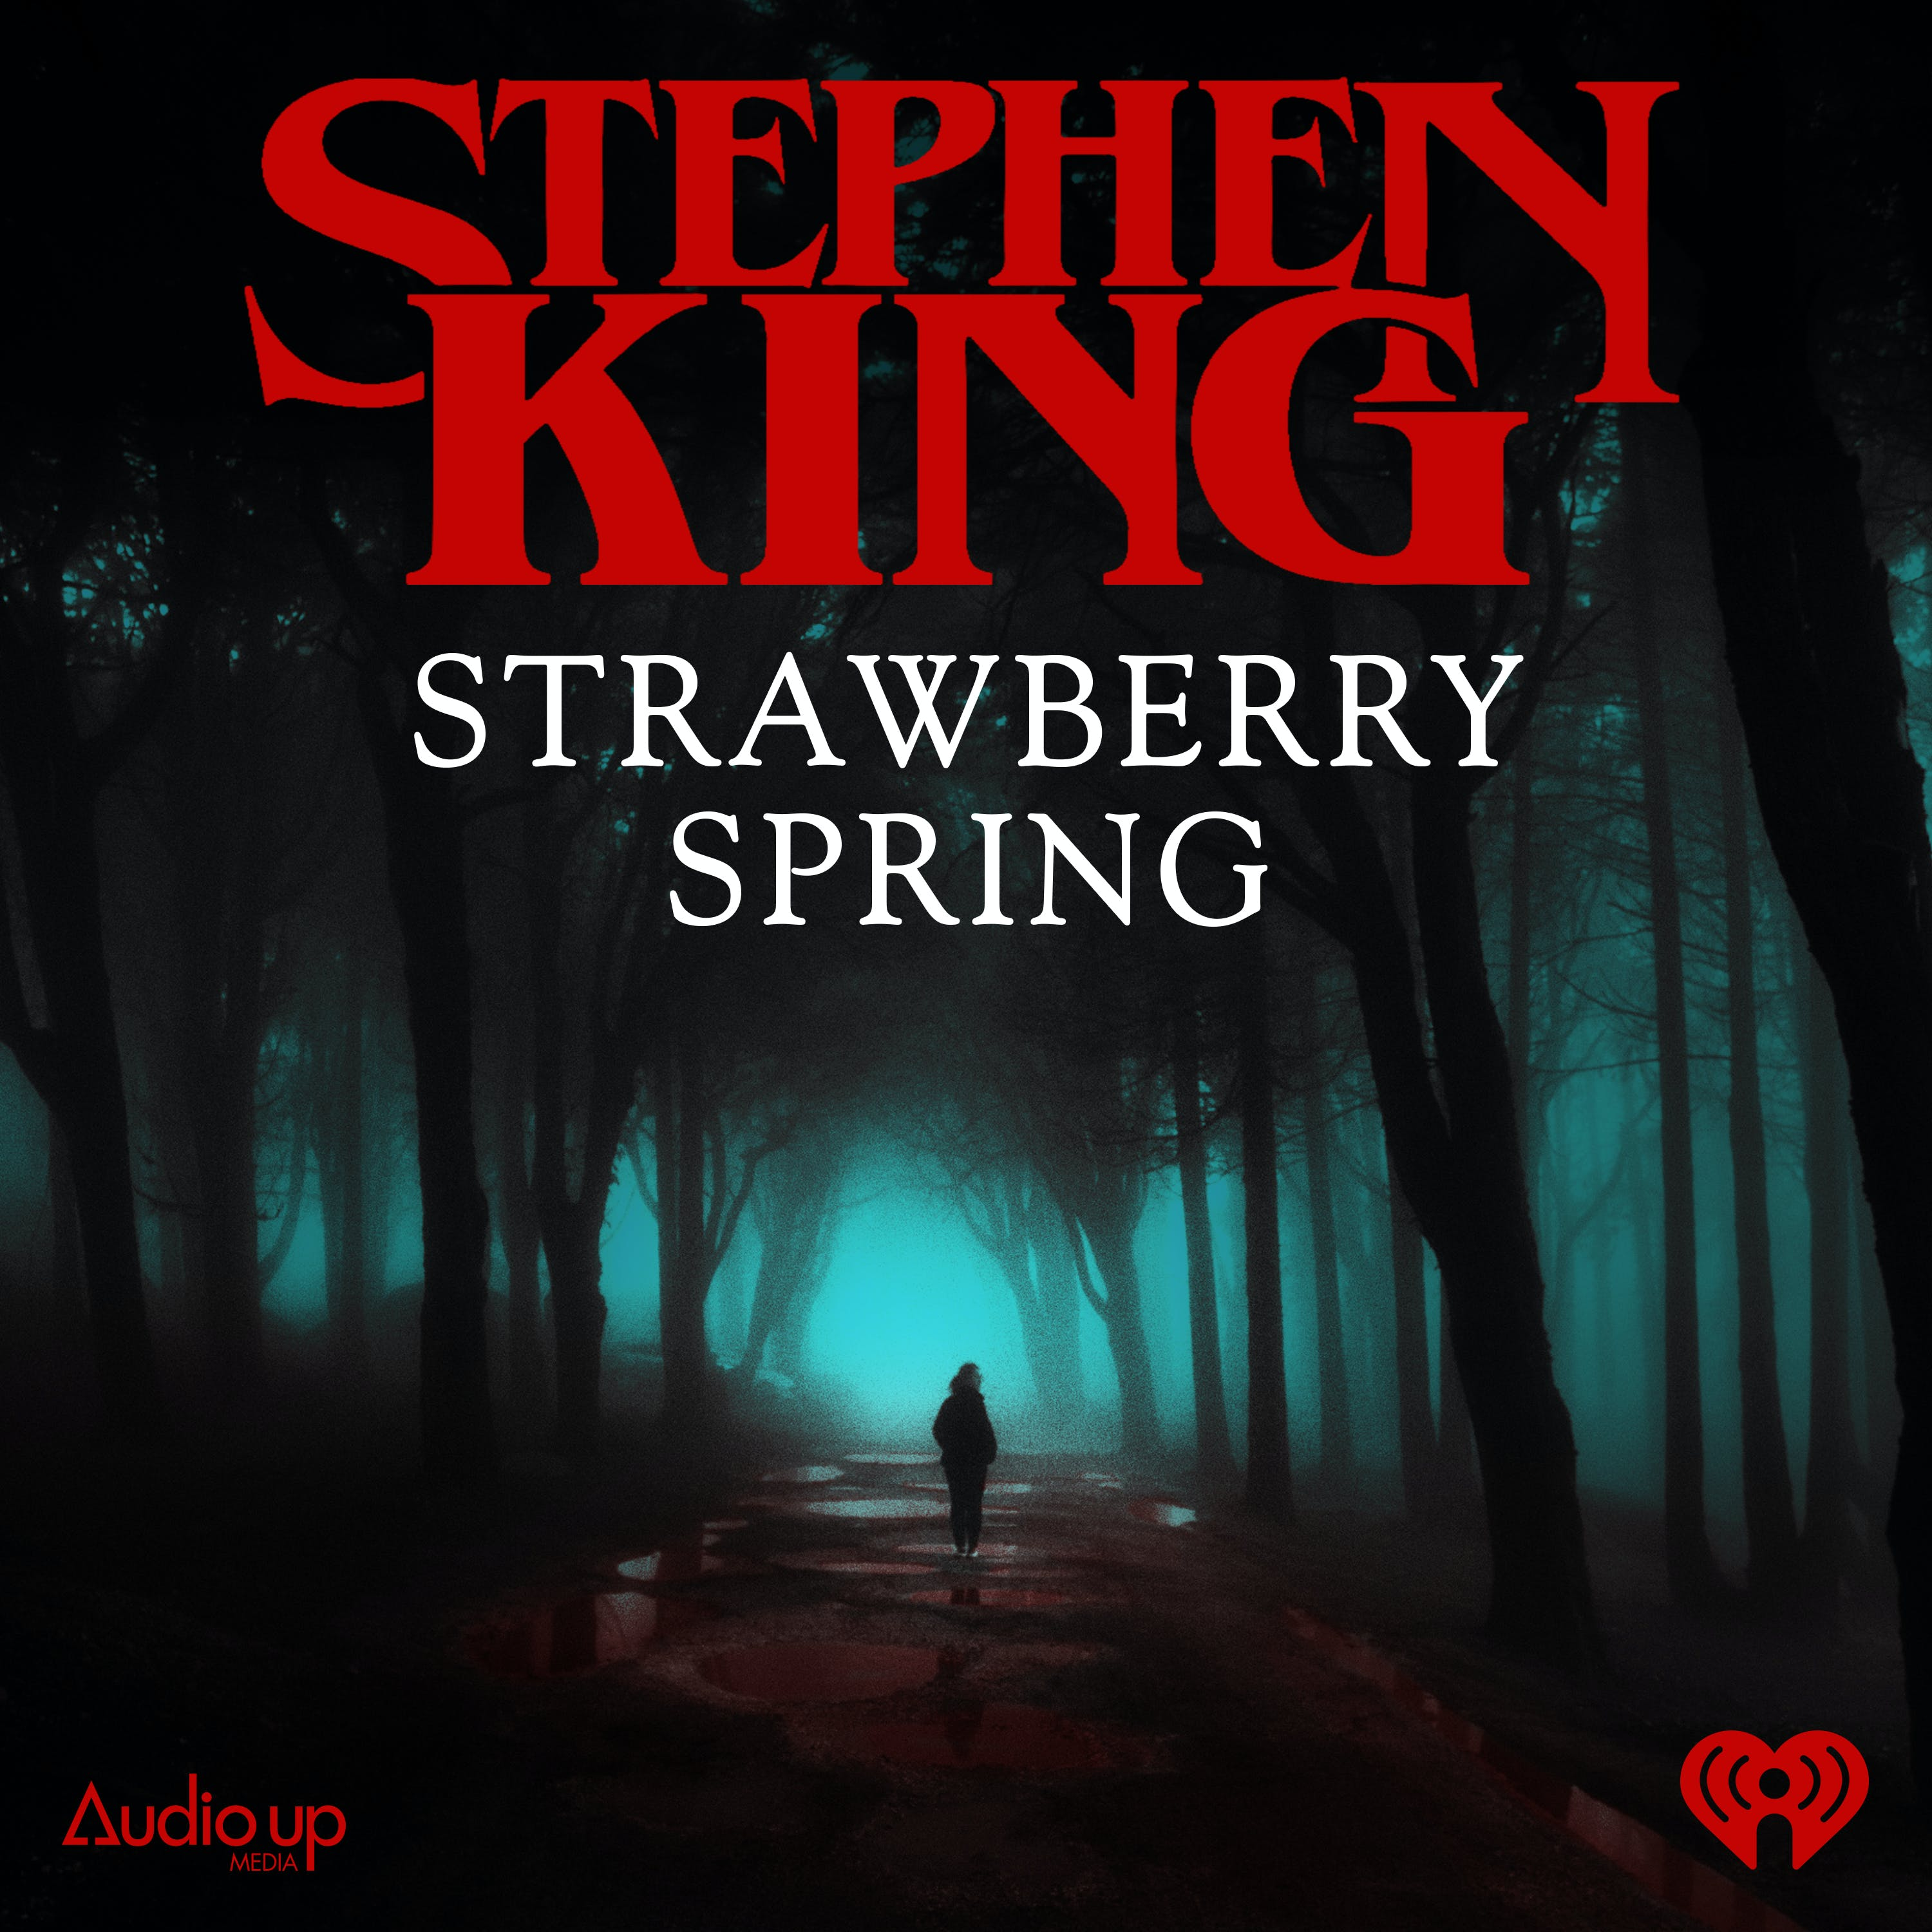 Strawberry Spring by iHeartRadio and Audio Up, Inc.